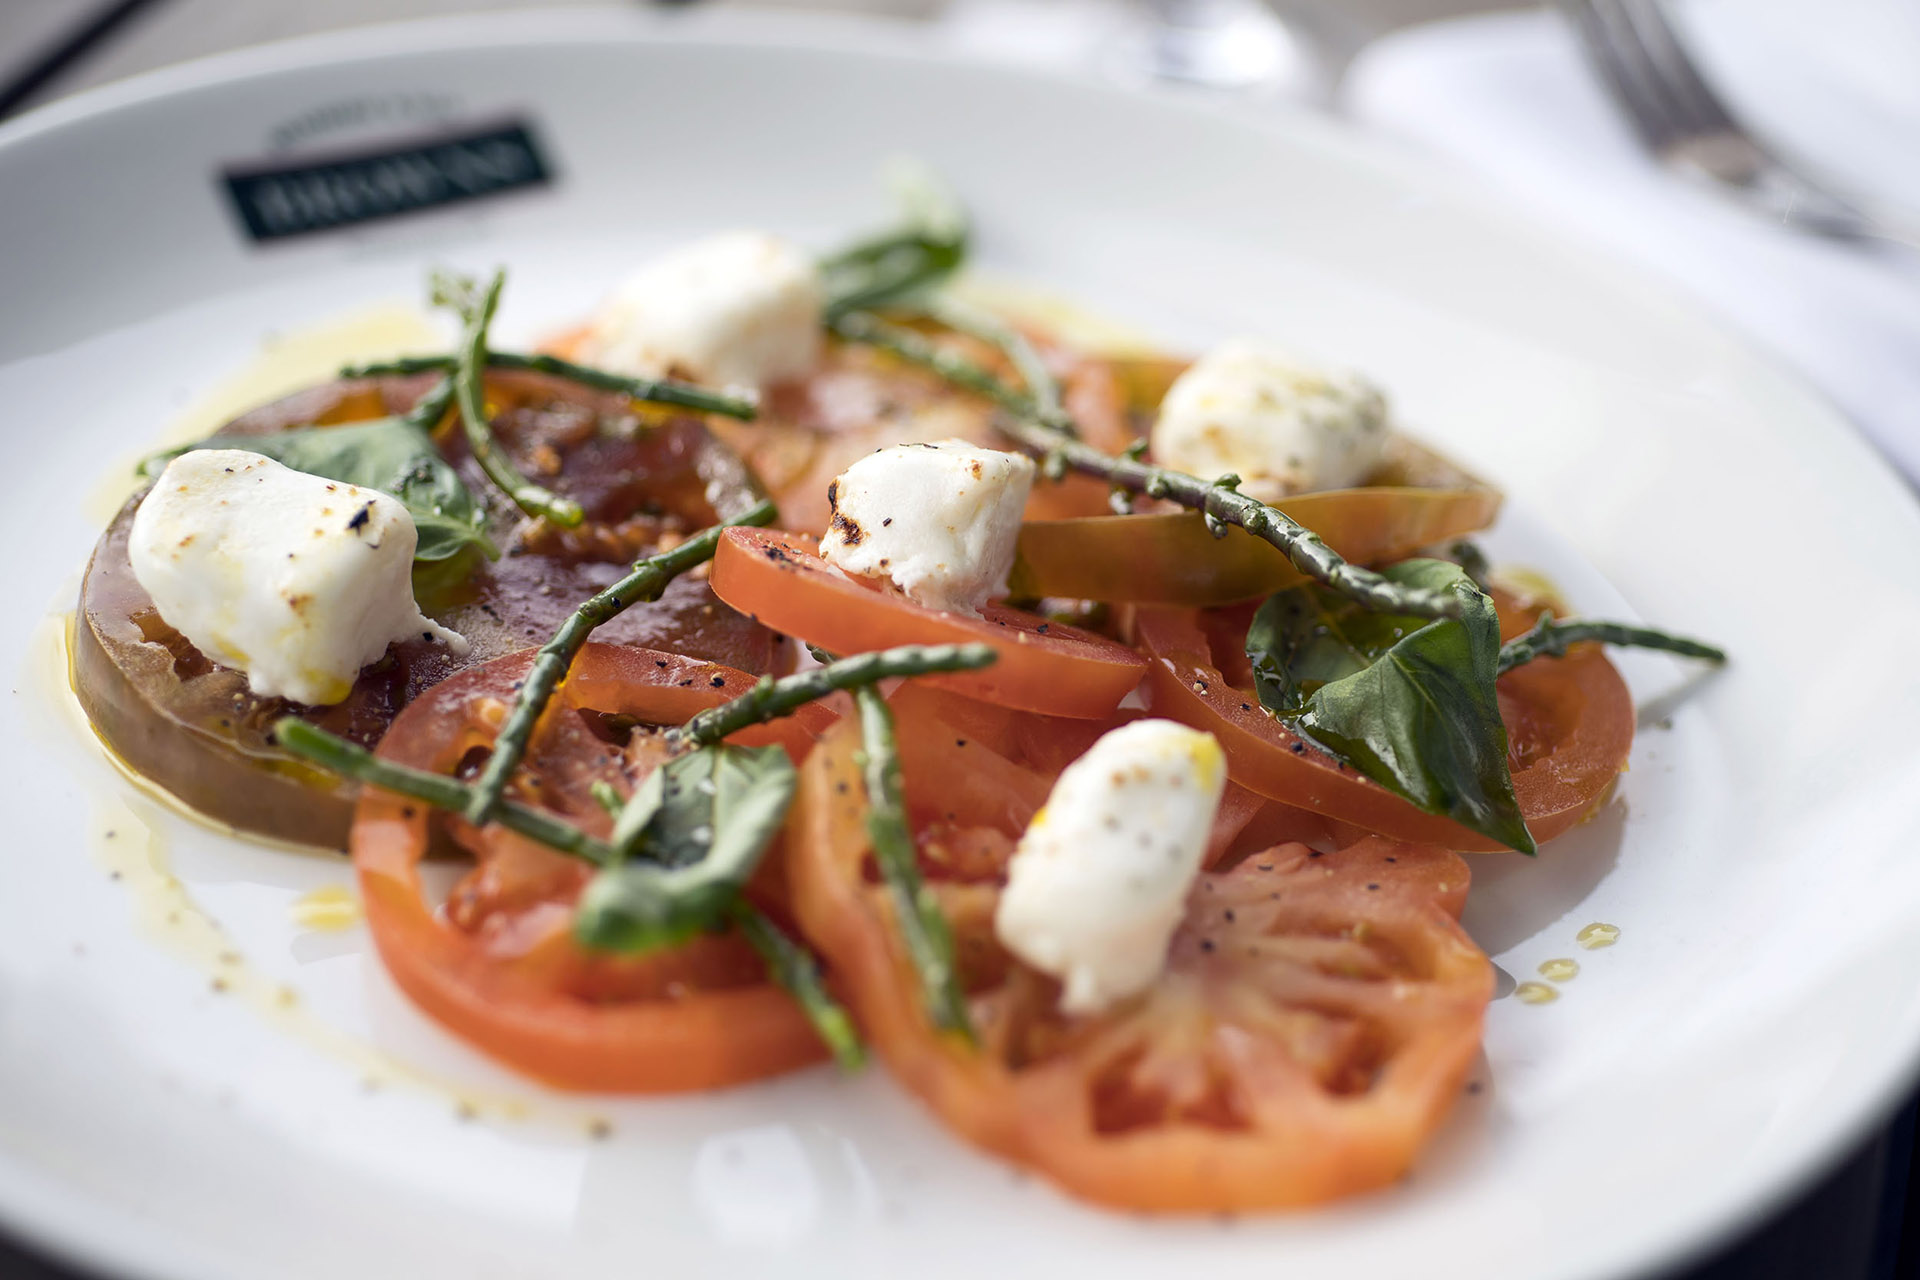 Photograph from Browns Restaurant in London showing new menu Food & Drink Photography by Jon Parker Lee UK wide